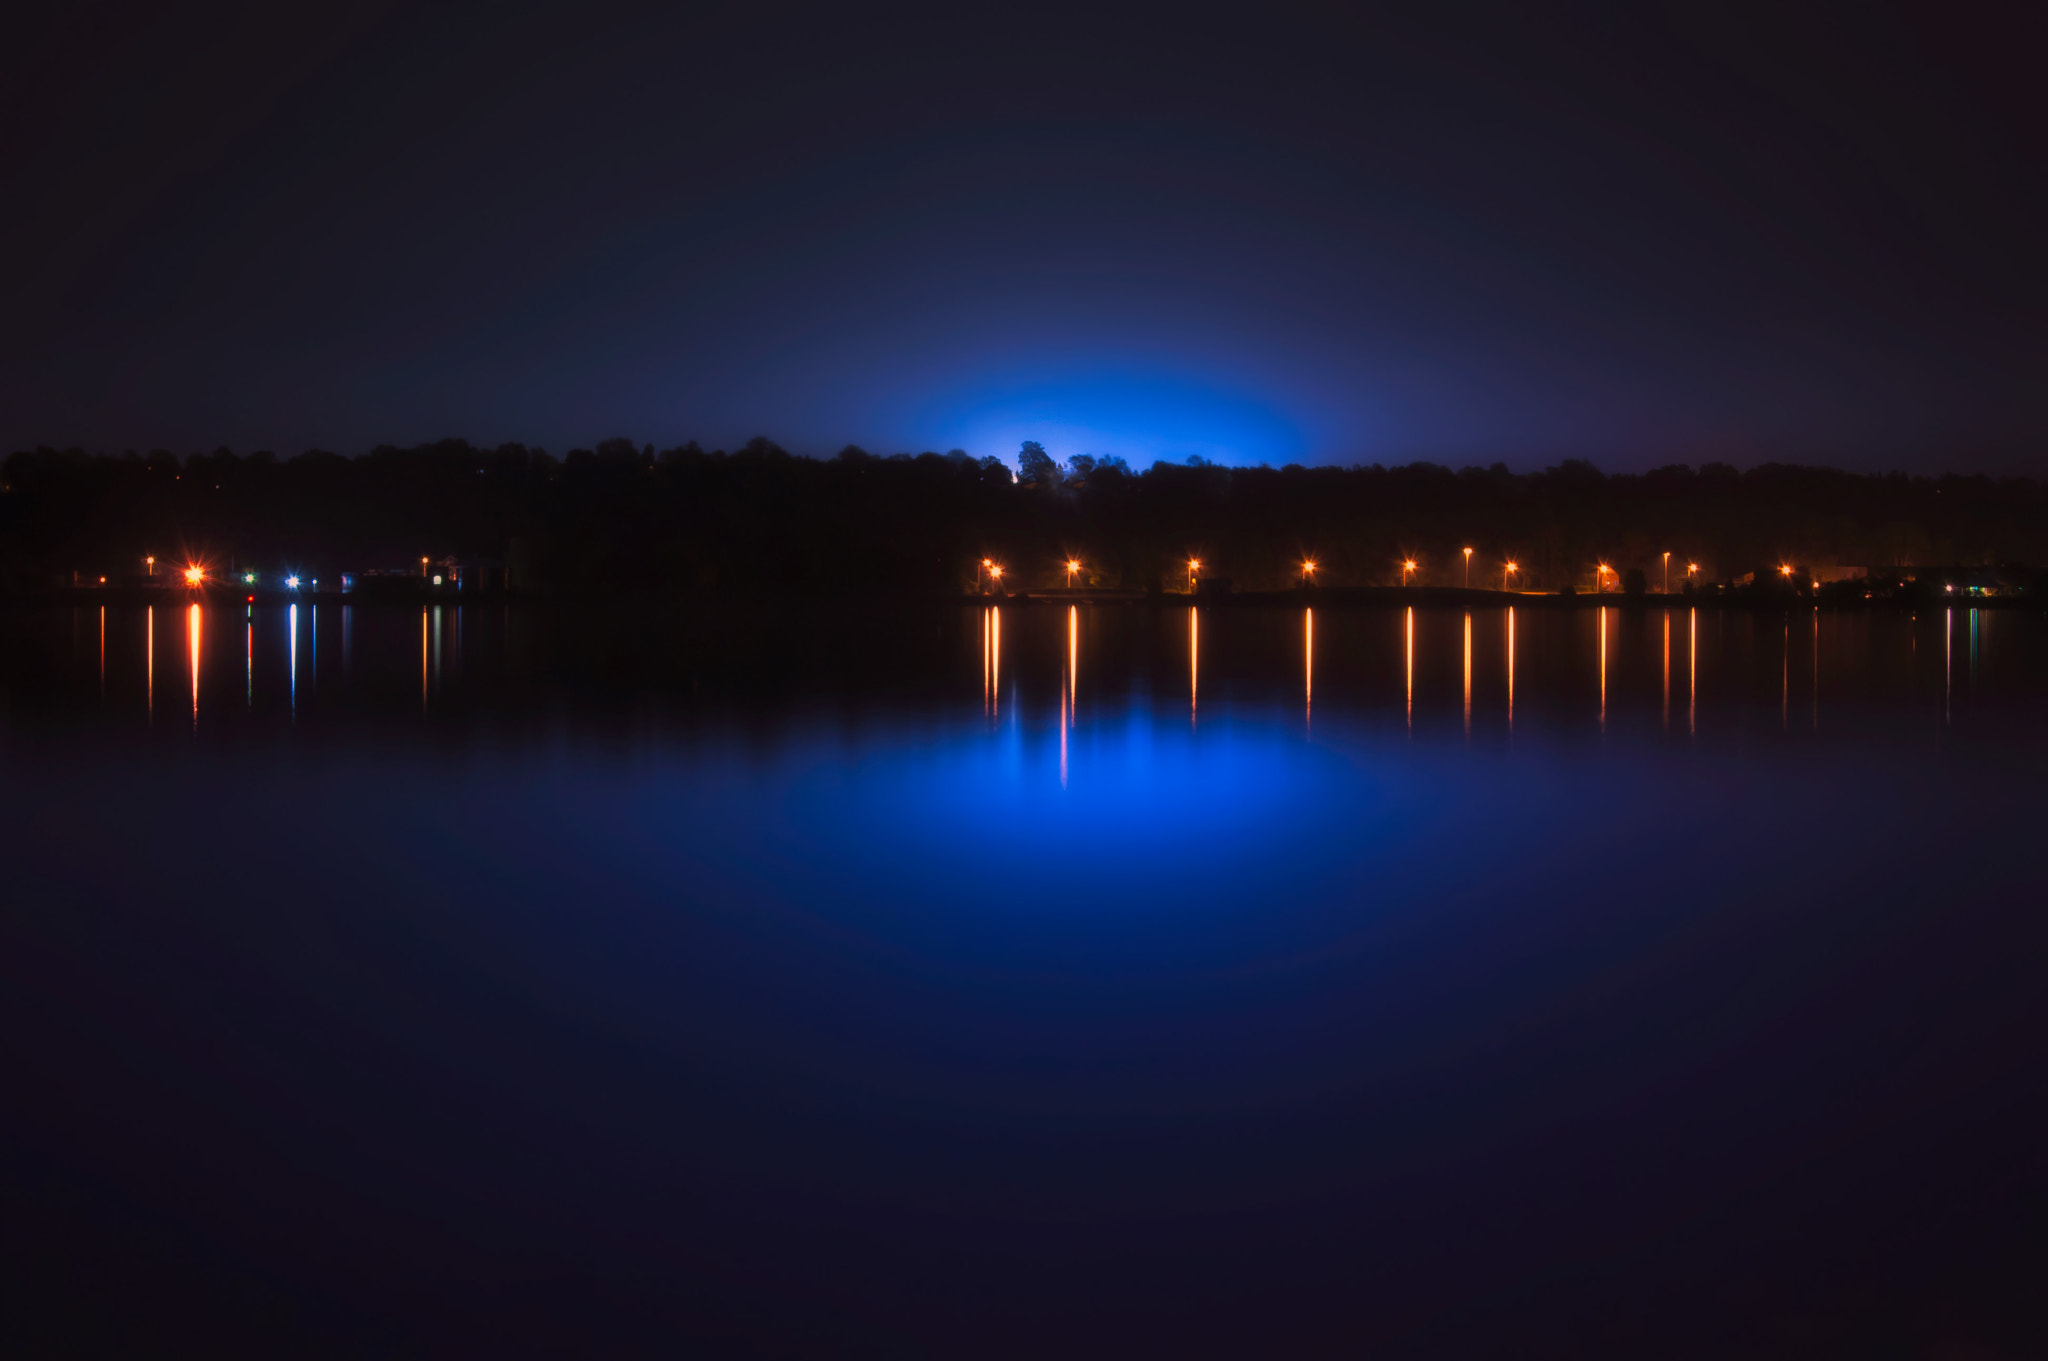 Photograph 11:59 Blue by Paul  Murphy on 500px